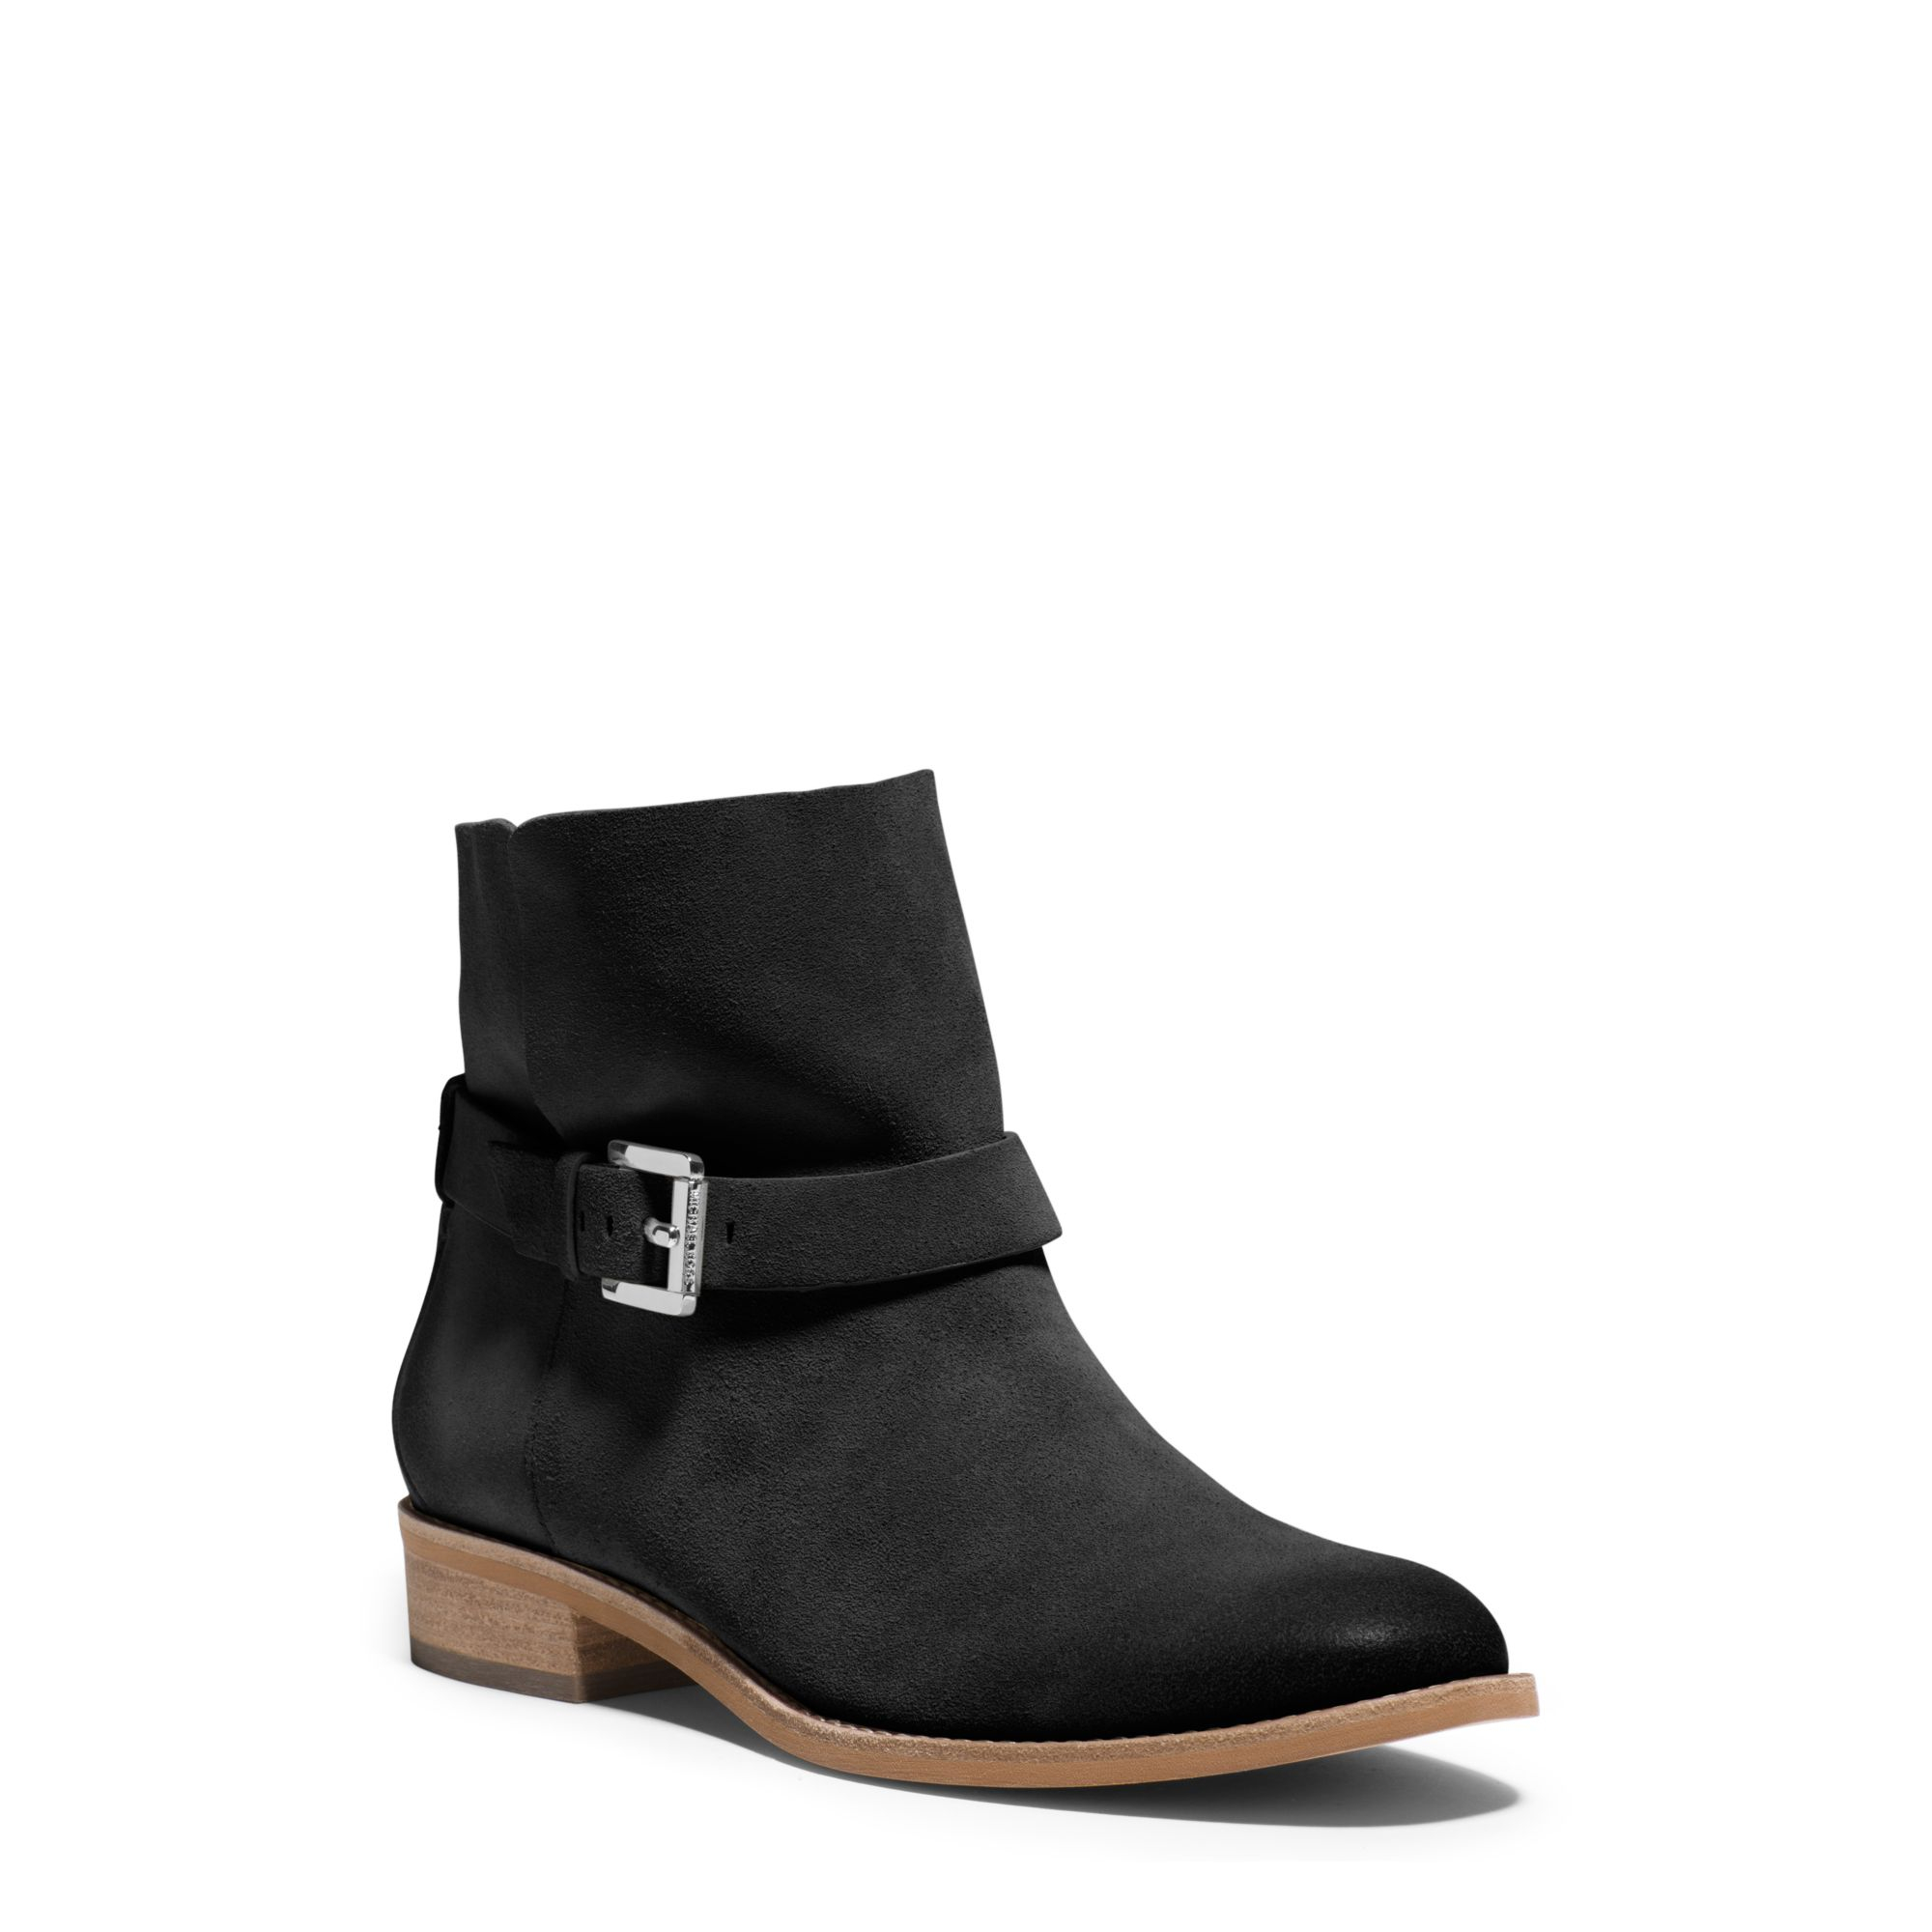 michael kors walton suede ankle boot in black lyst